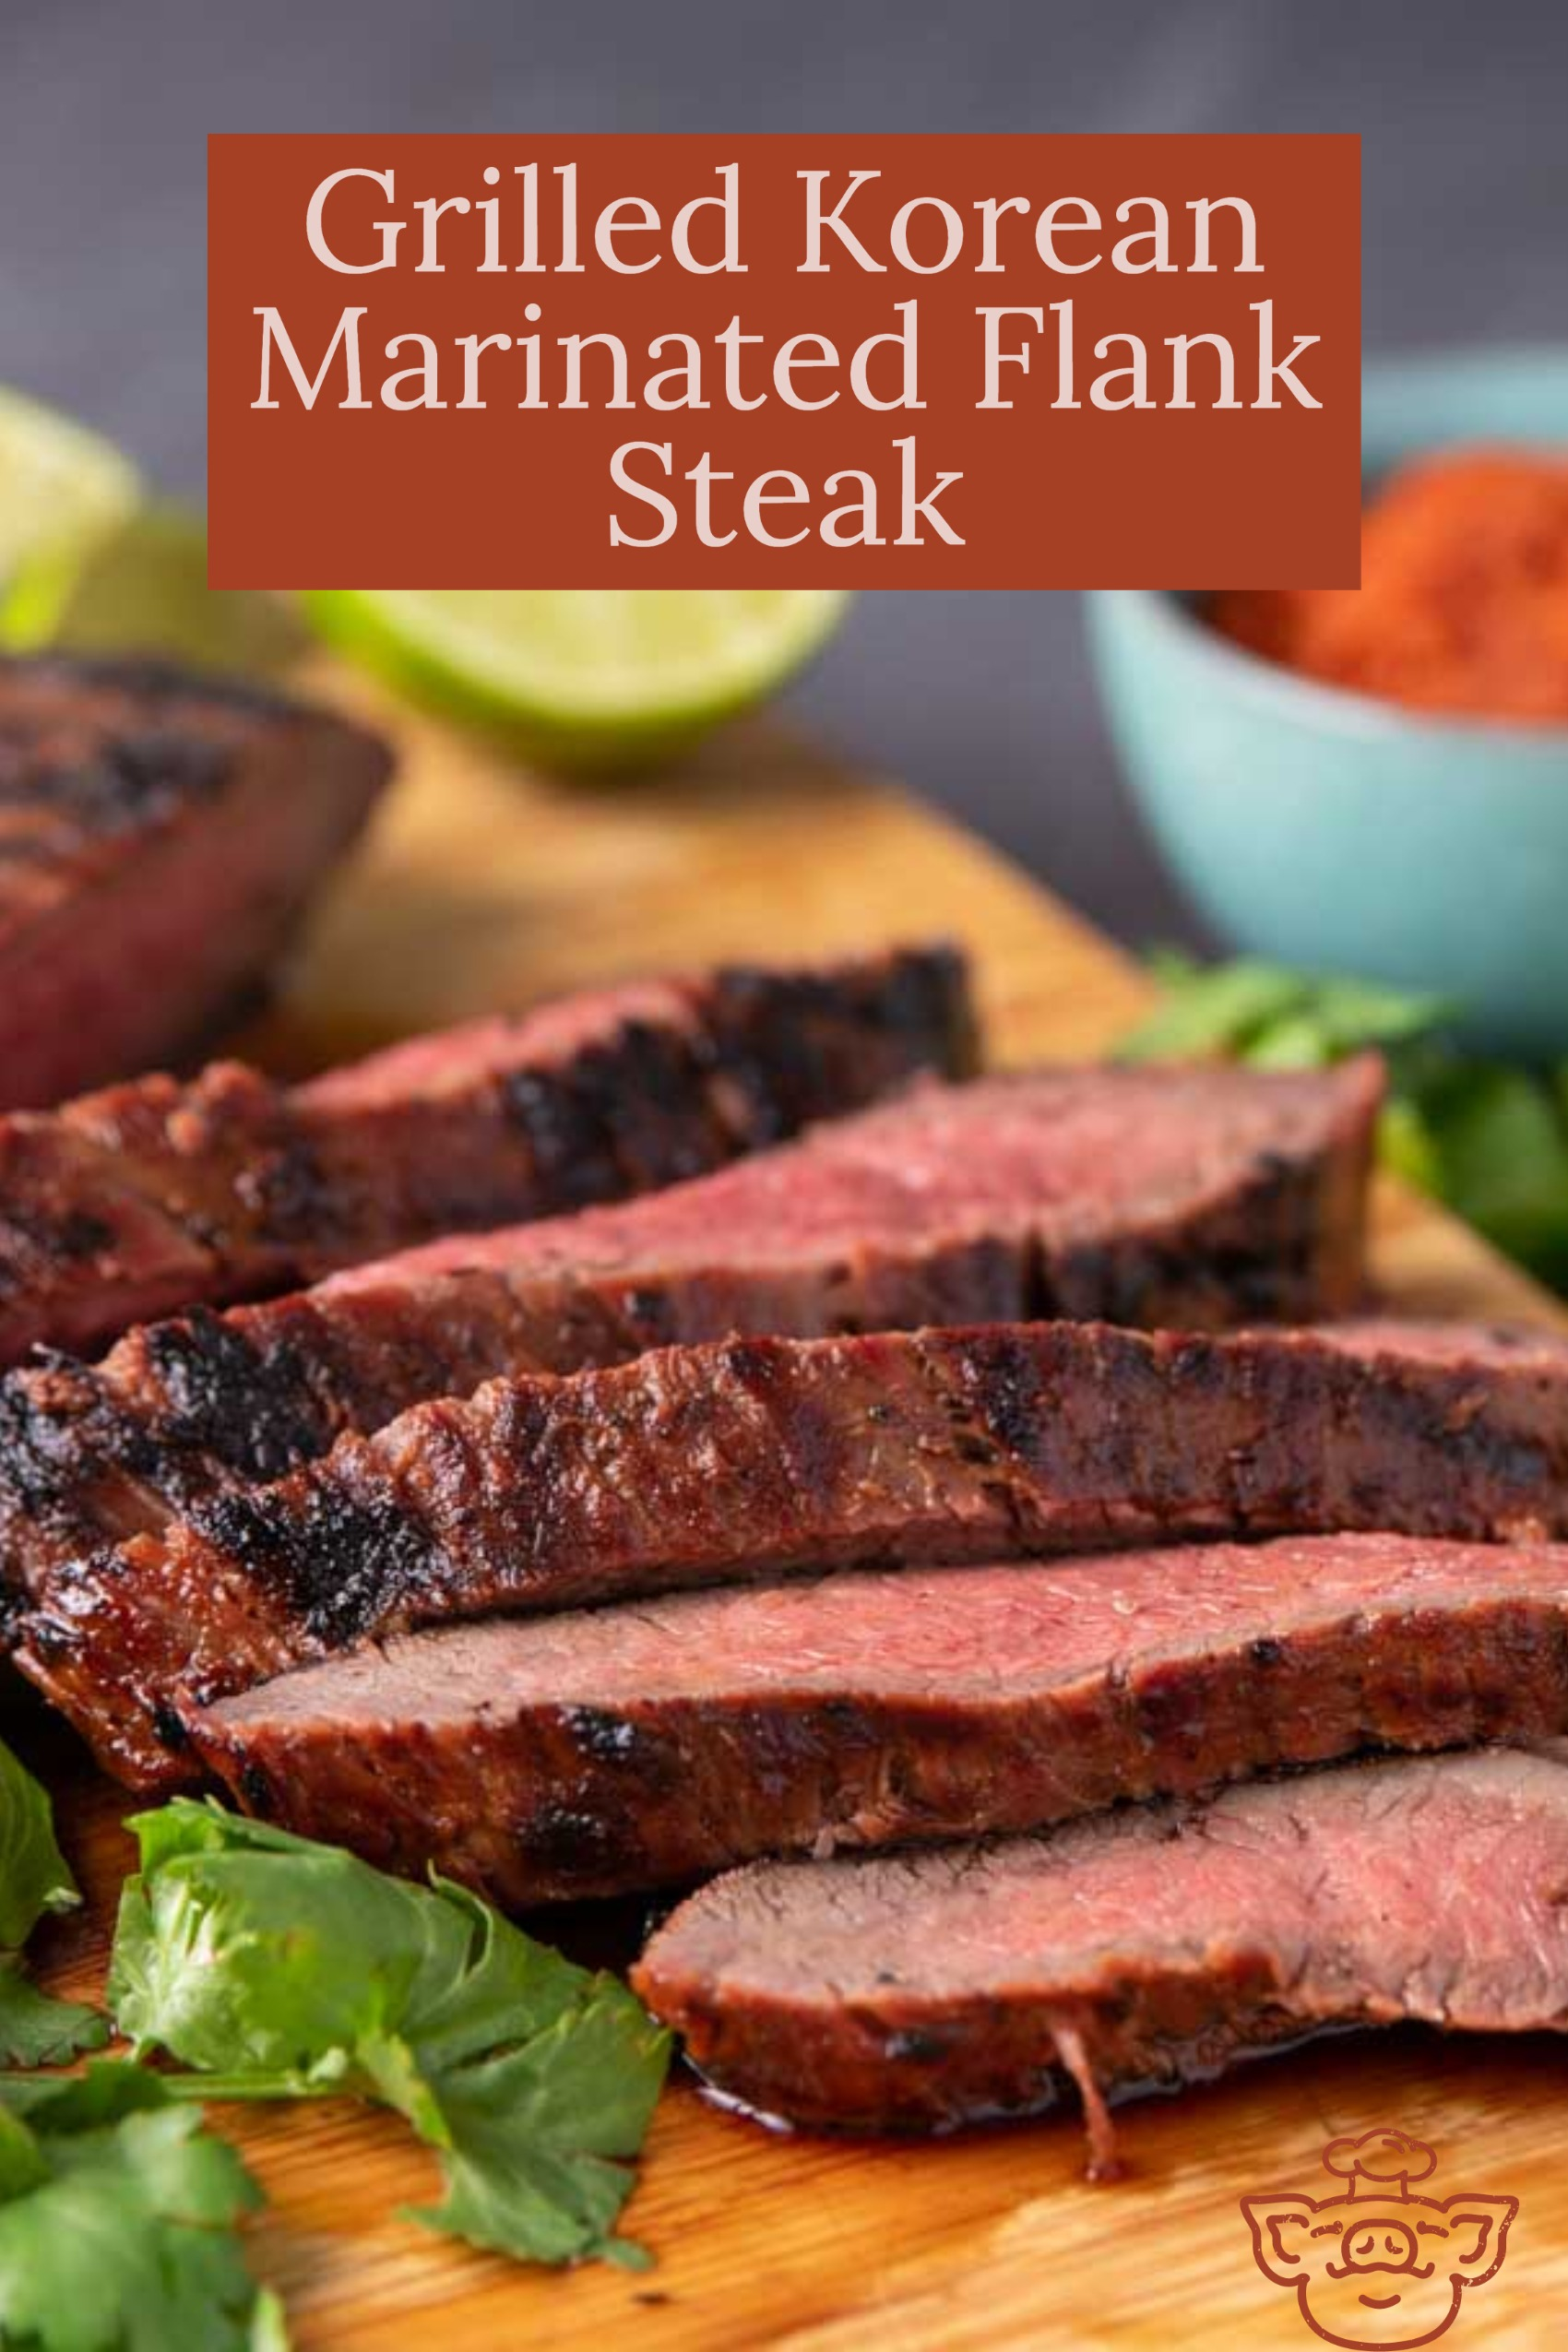 Grilled Korean Marinated Flank Steak